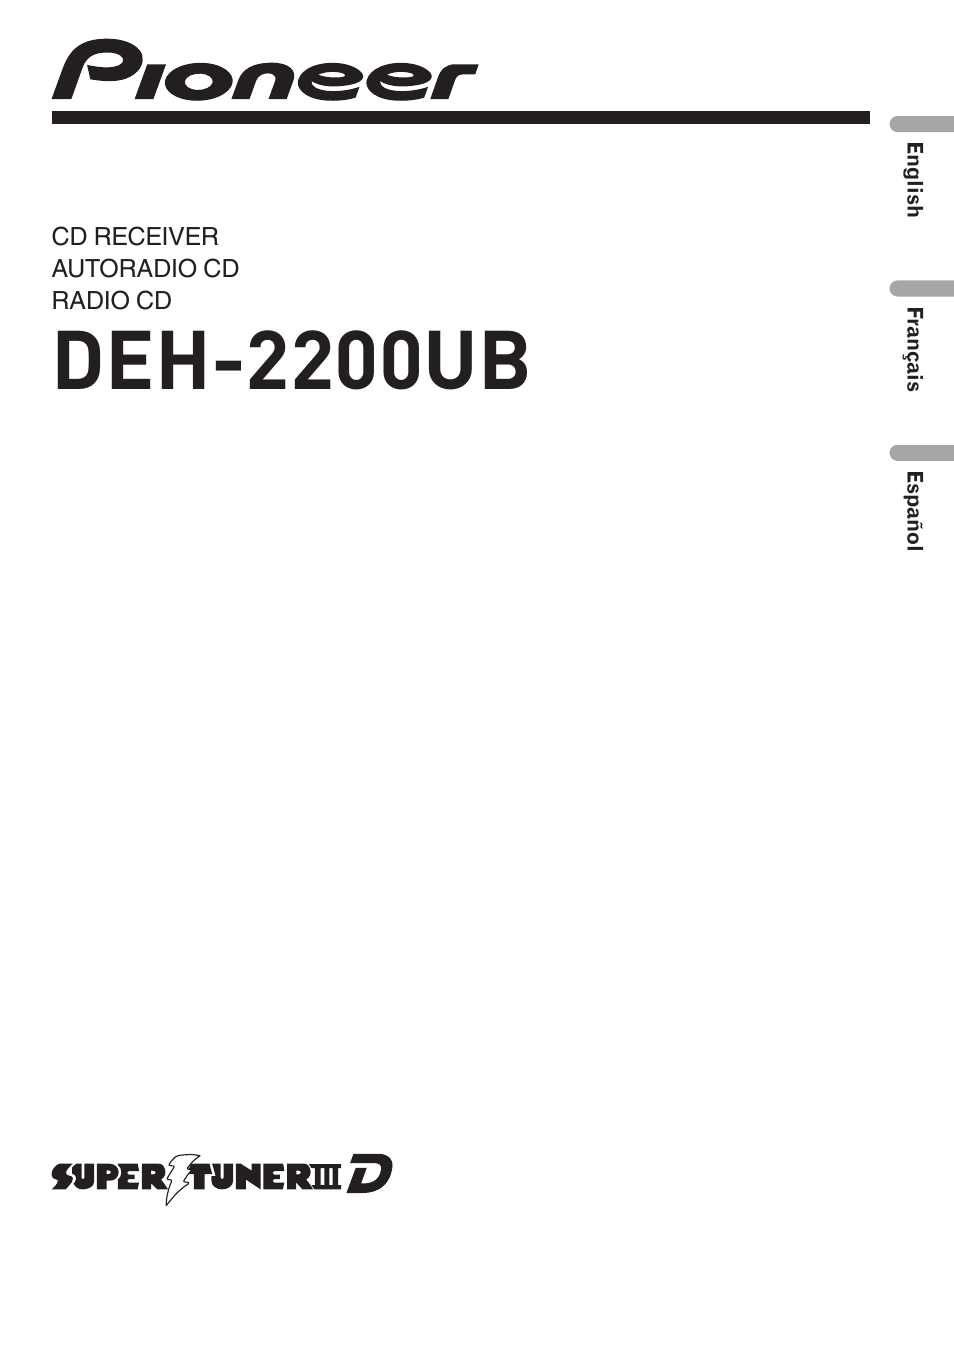 pioneer deh 2200ub user manual 75 pages also for yrd5301bs rh manualsdir com pioneer deh-2200ub wiring diagram pioneer deh-2200ub manual español